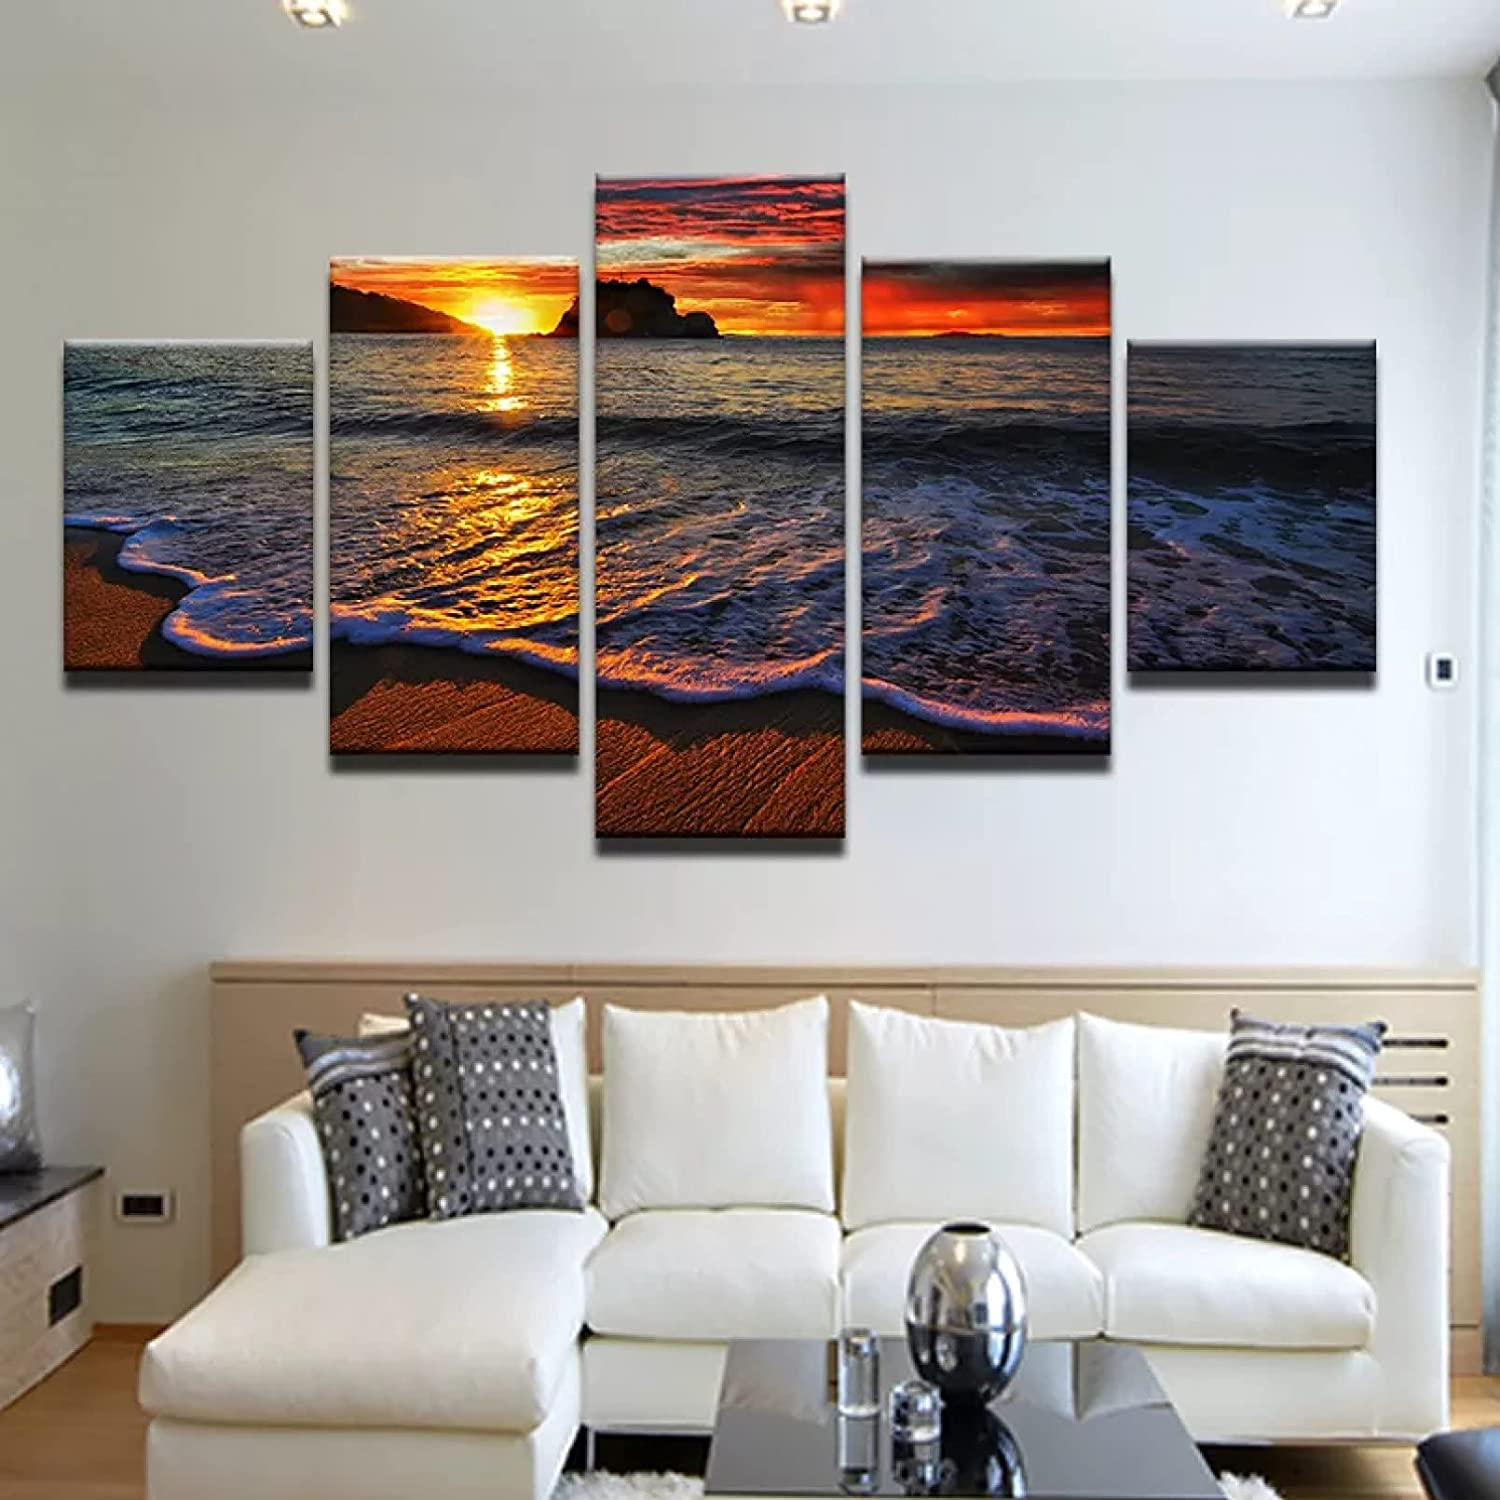 5 Even Canvas Decorative Paintings Poster Print New product! New type Clearance SALE Limited time Pic Art Seascape